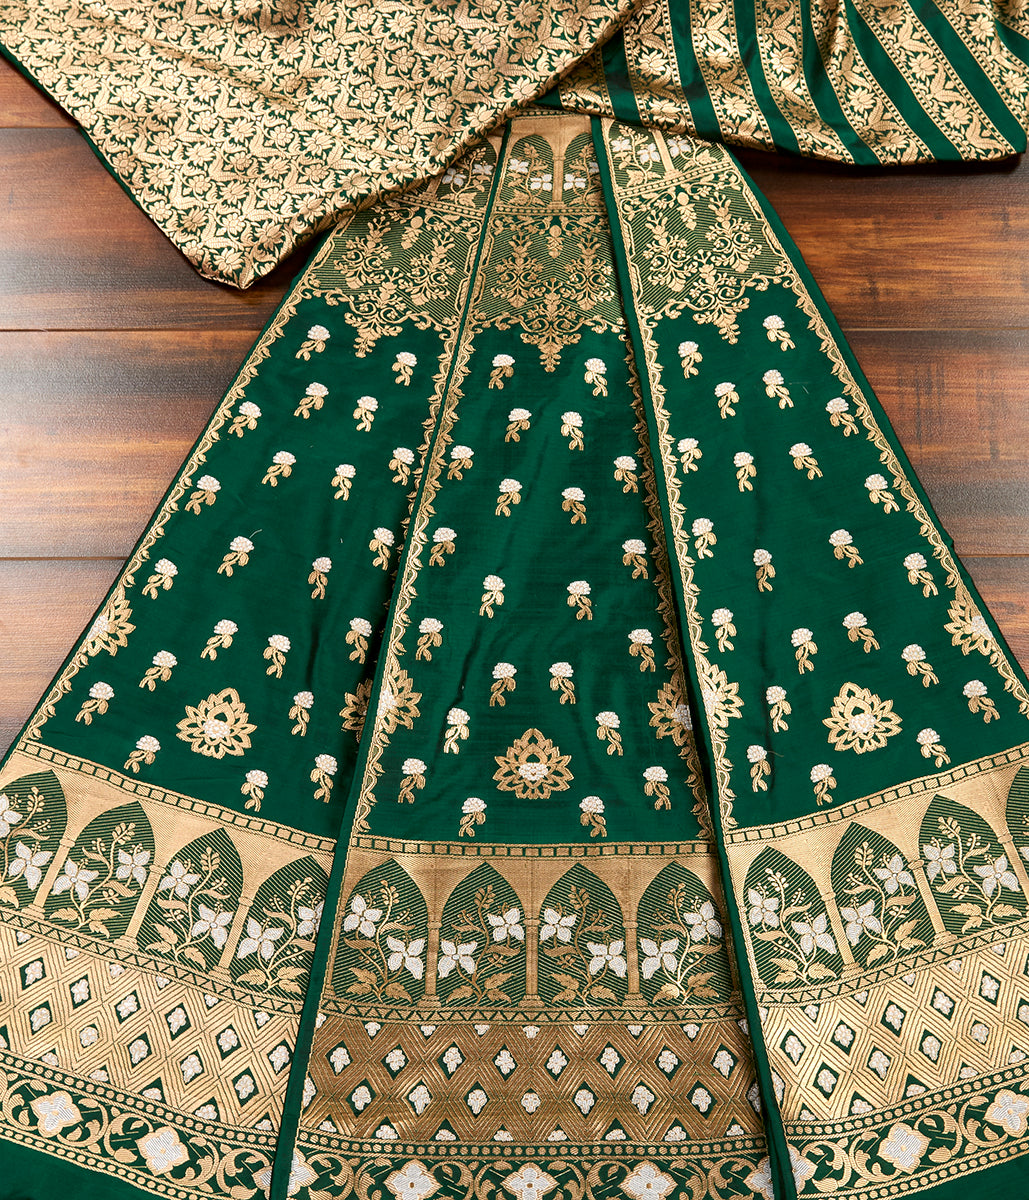 Handwoven Banarasi Katan Silk Lehenga in Emerald Green Color